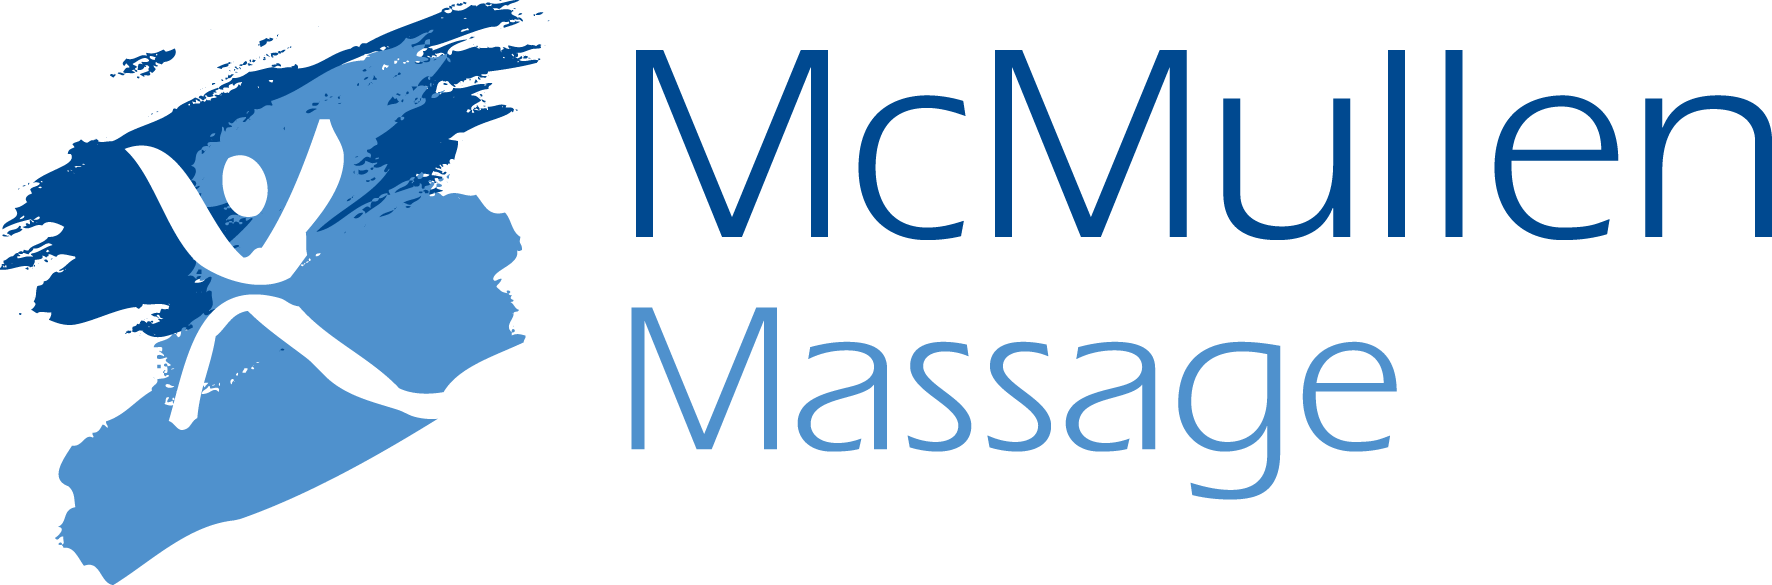 McMullen Massage